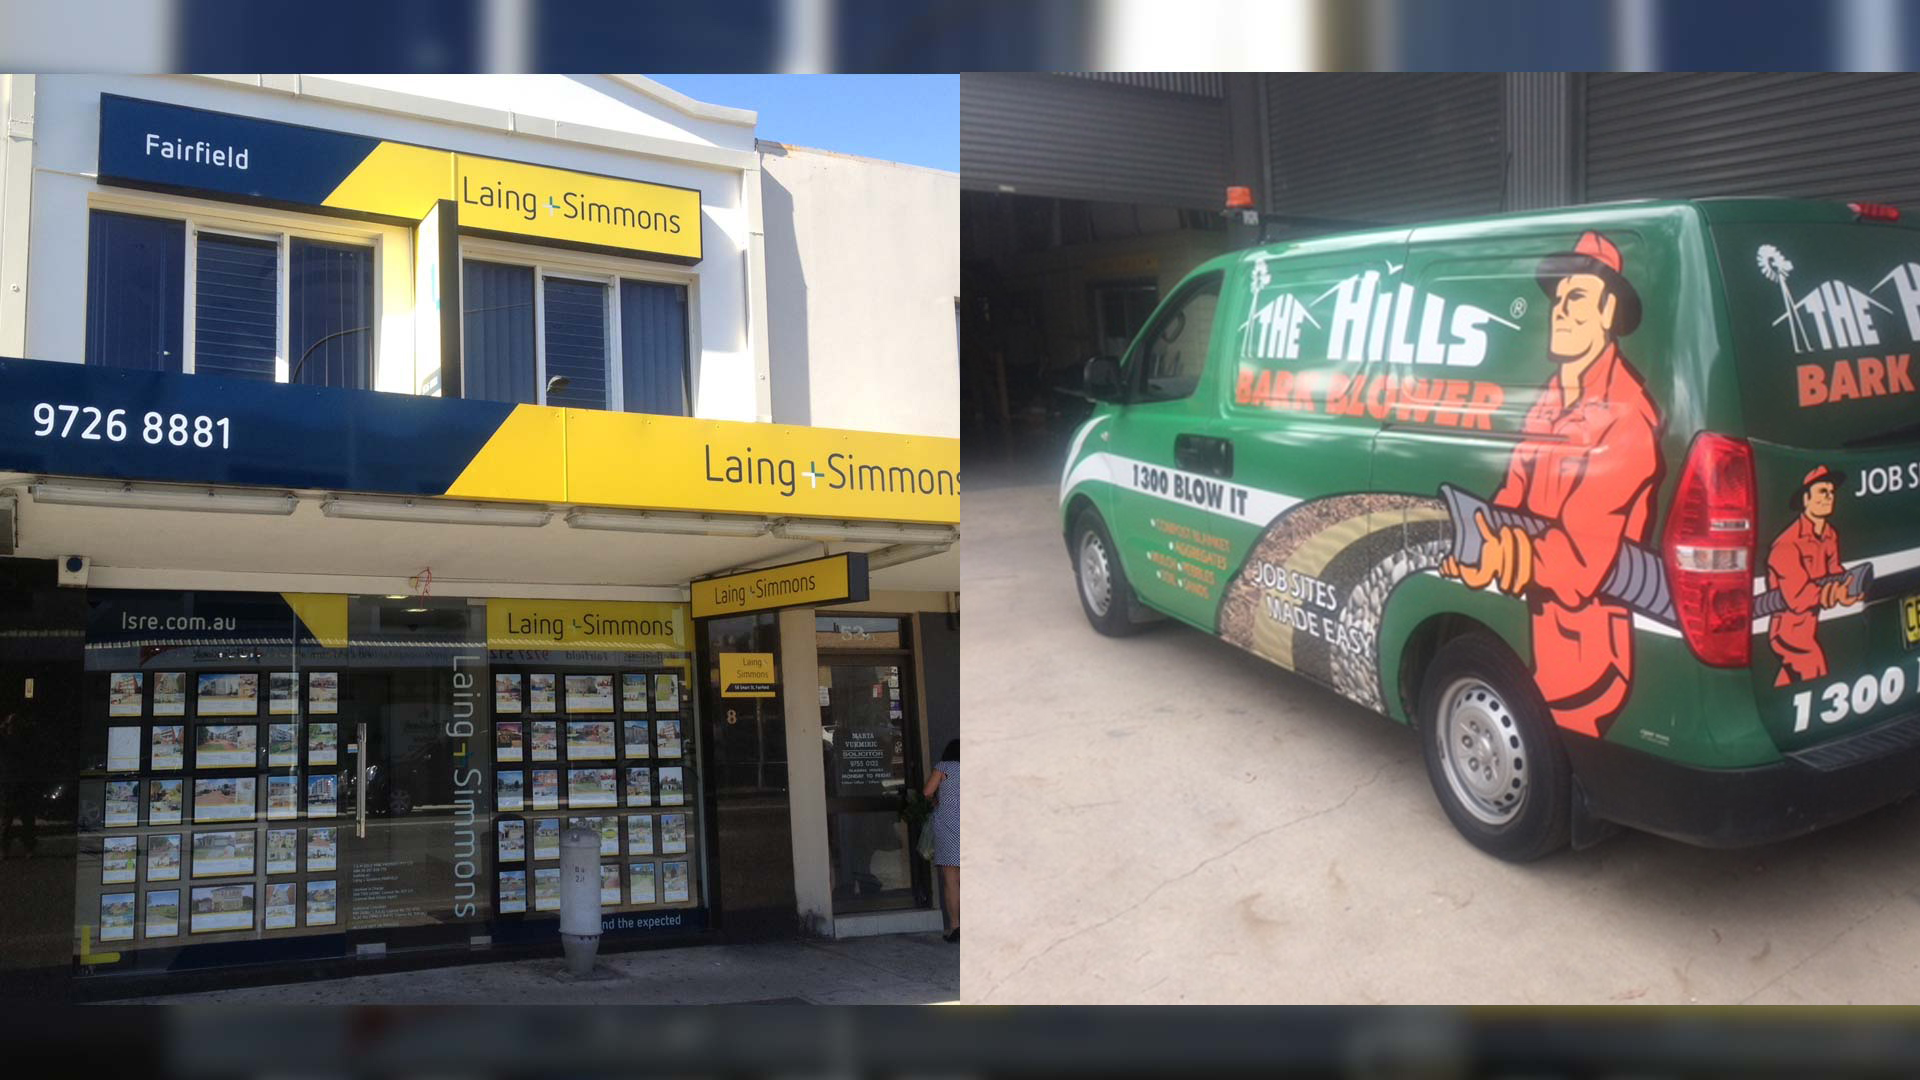 Cutting Edge Signage Business For Sale in New South Wales